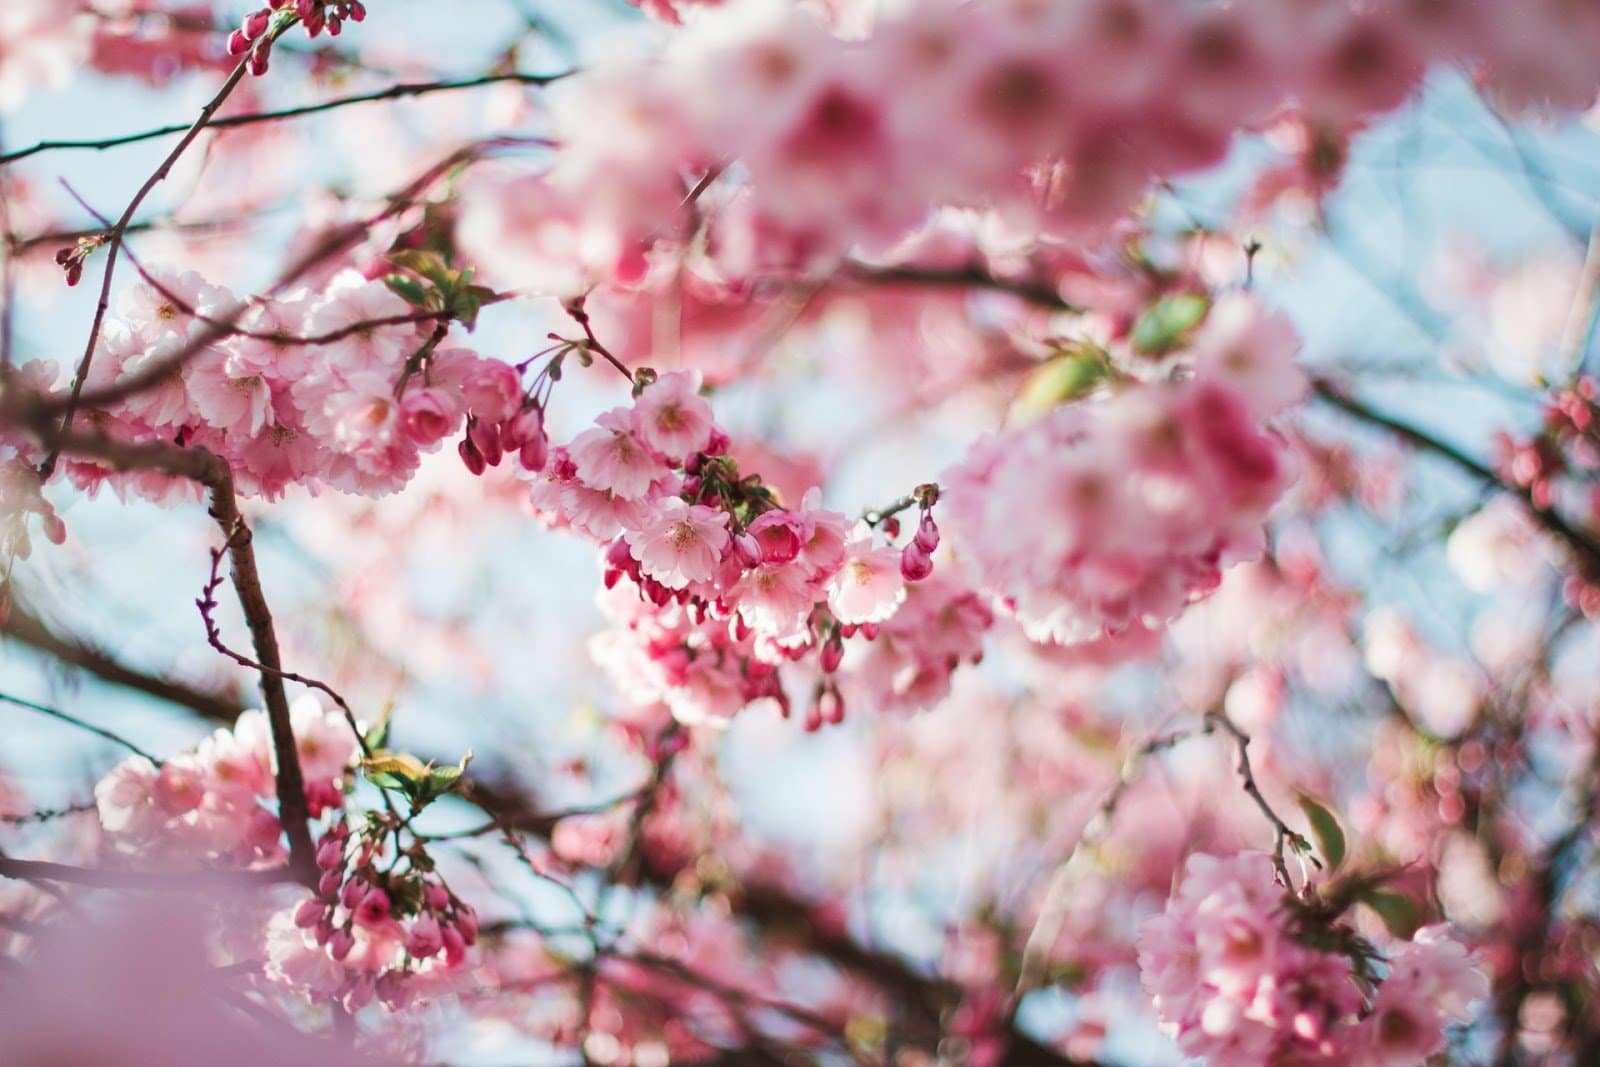 bloomin-cherry-blossoms